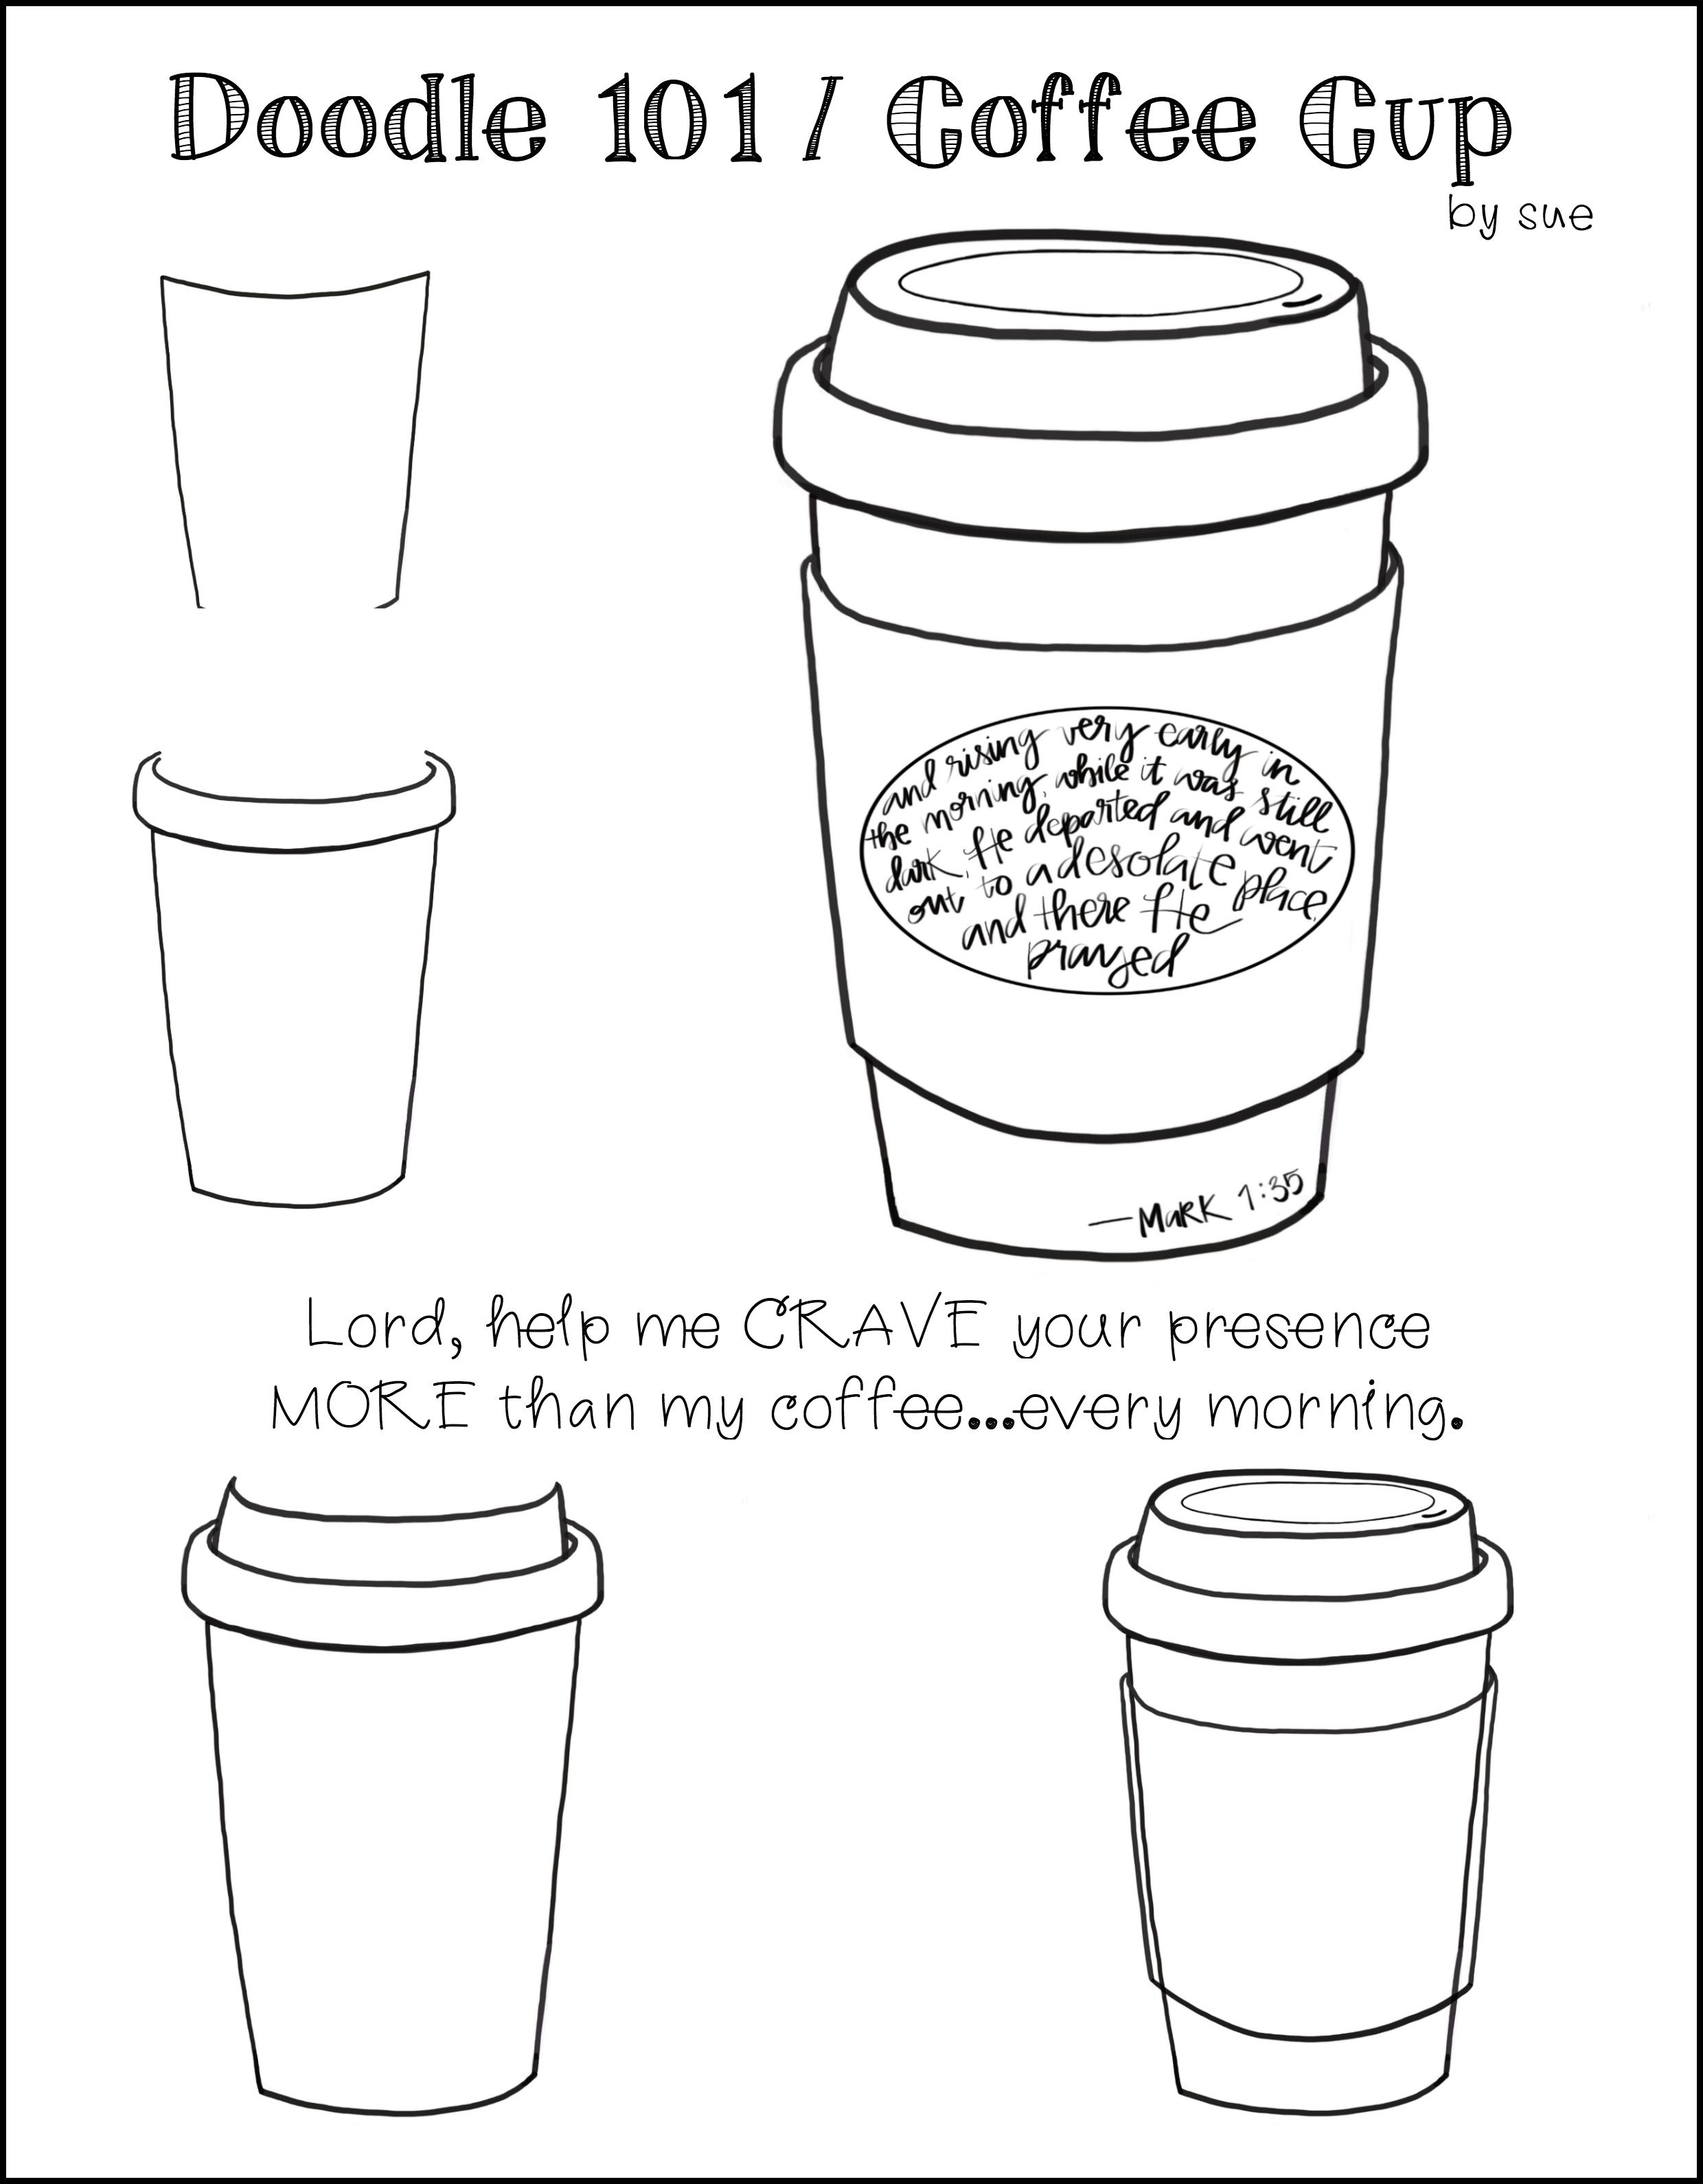 Doodle 101 Coffee 2nd Jesus First Bible Doodling Doodles